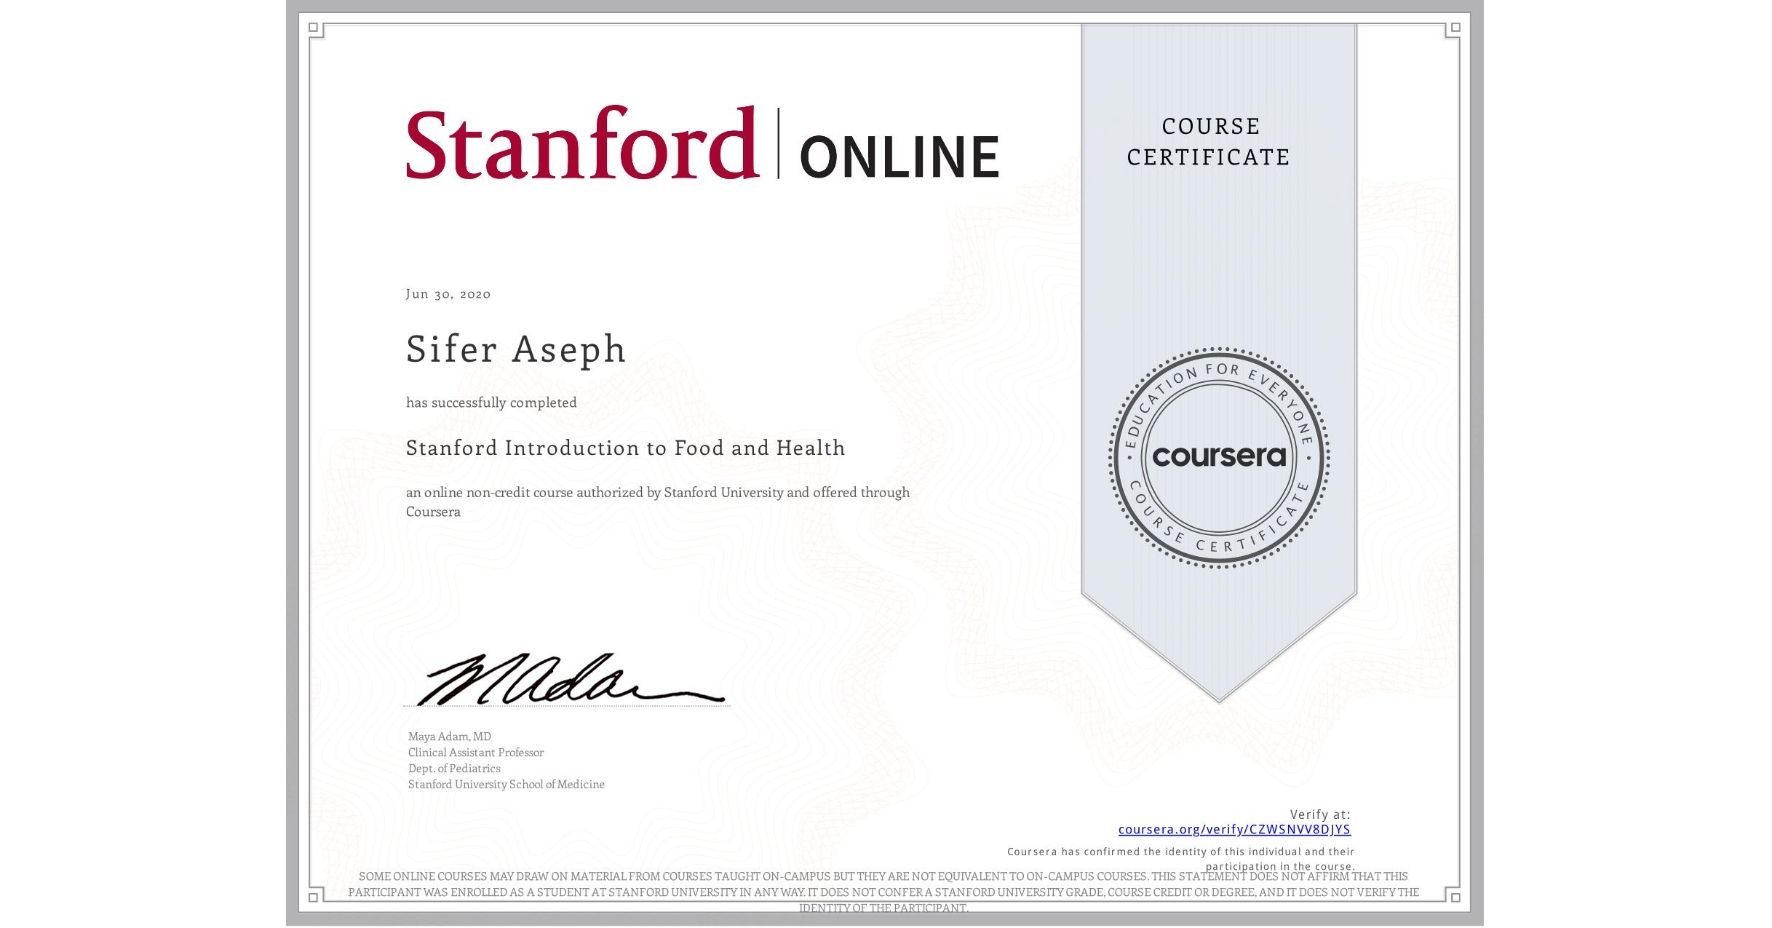 View certificate for Sifer Aseph, Stanford Introduction to Food and Health, an online non-credit course authorized by Stanford University and offered through Coursera